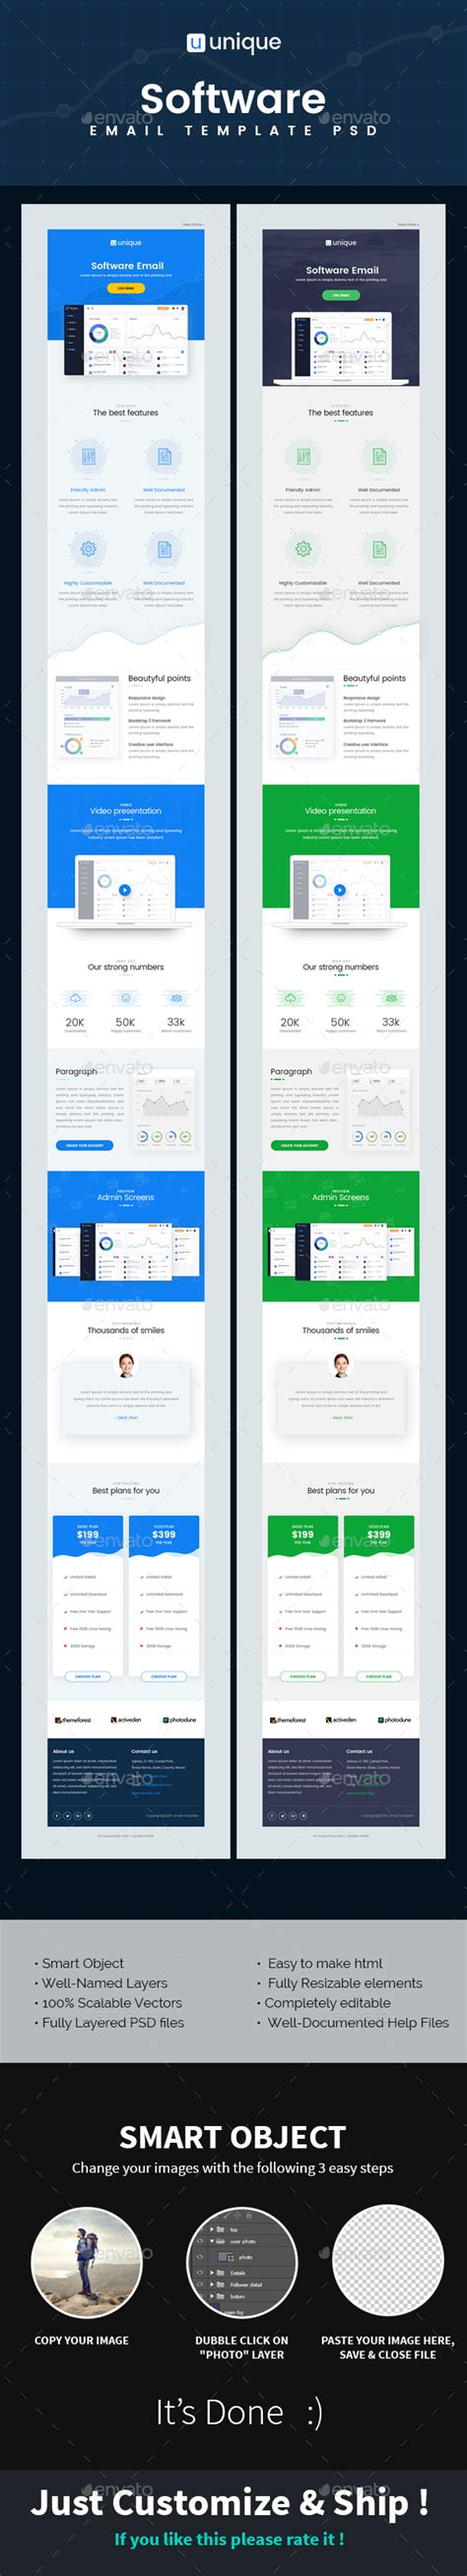 Unique Software Email Template Psd By Kalanidhithemes Graphicriver Unique Email Templates